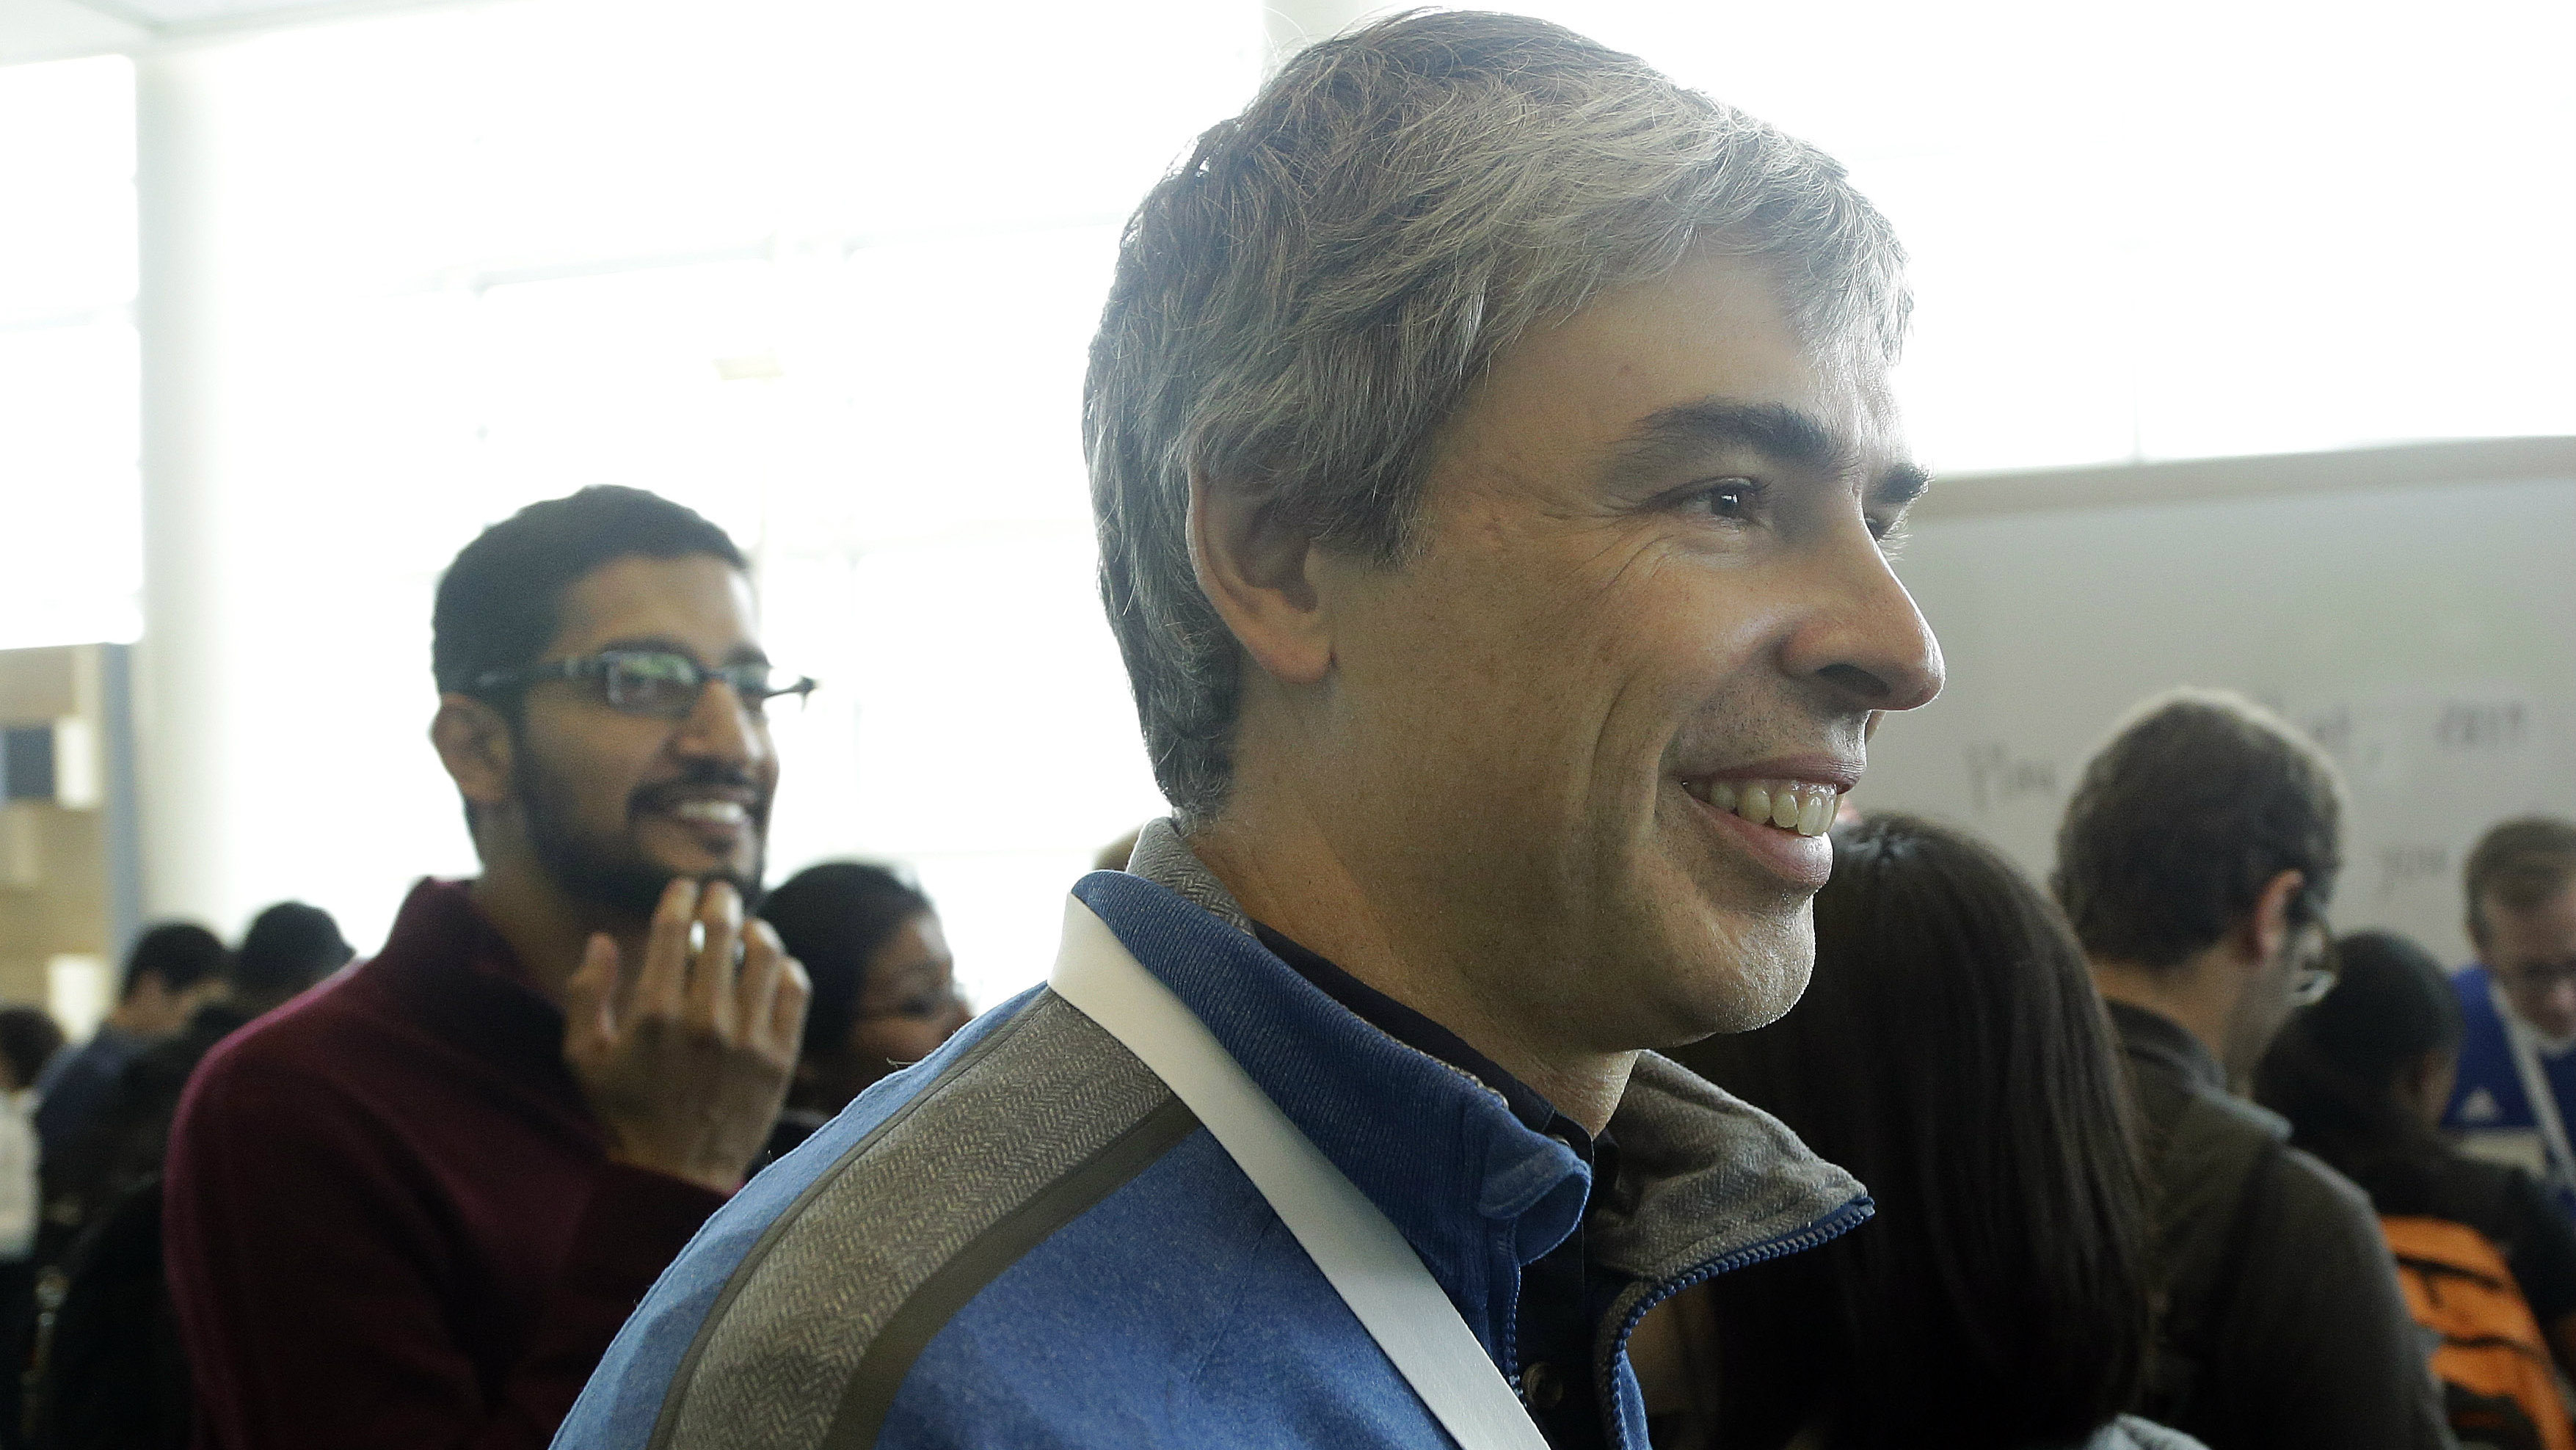 Google CEO Larry Page, foreground, and Sundar Pichai, senior vice president of Android, Chrome and Apps, left, walk along the demo floor at Google I/O 2014 in San Francisco, Wednesday, June 25, 2014. As the Internet giant's Android operating system stretches into cars, homes and smartwatches, this year's annual confab will expand on its usual focus on smartphones and tablets. (AP Photo/Jeff Chiu)